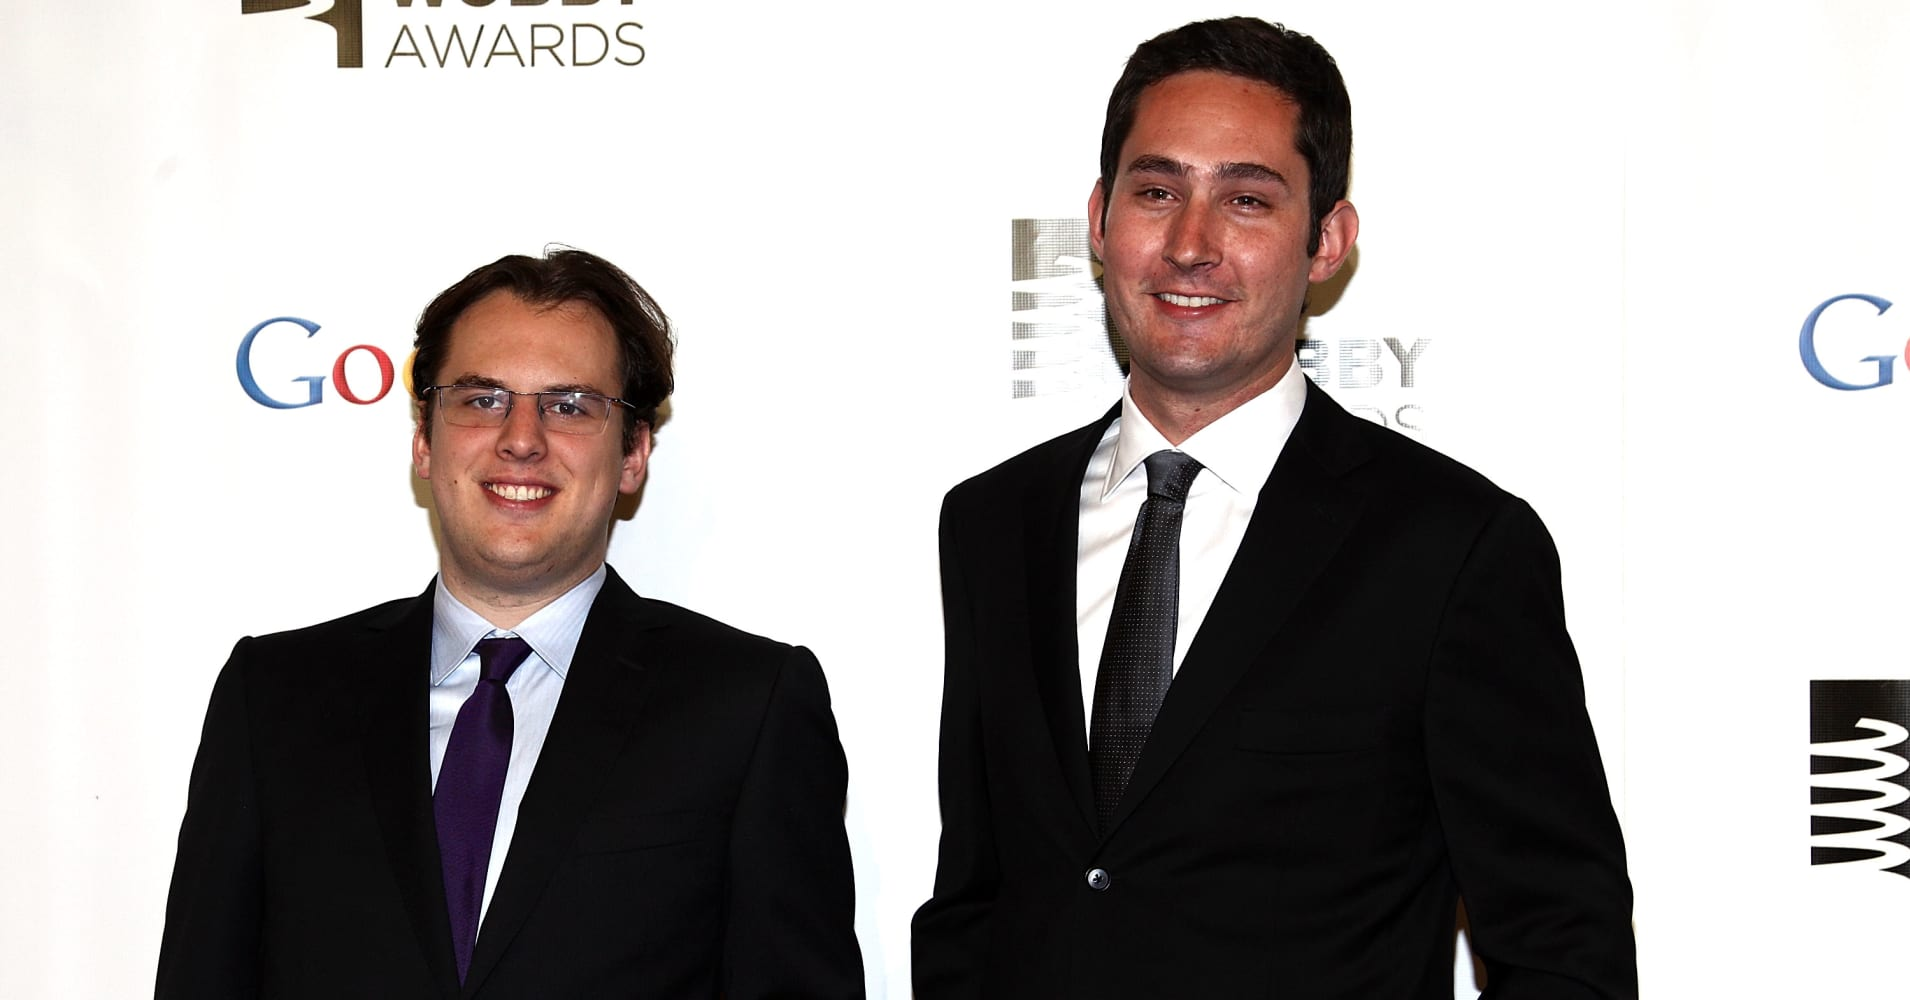 Instagram's founders leaving Facebook to build new things